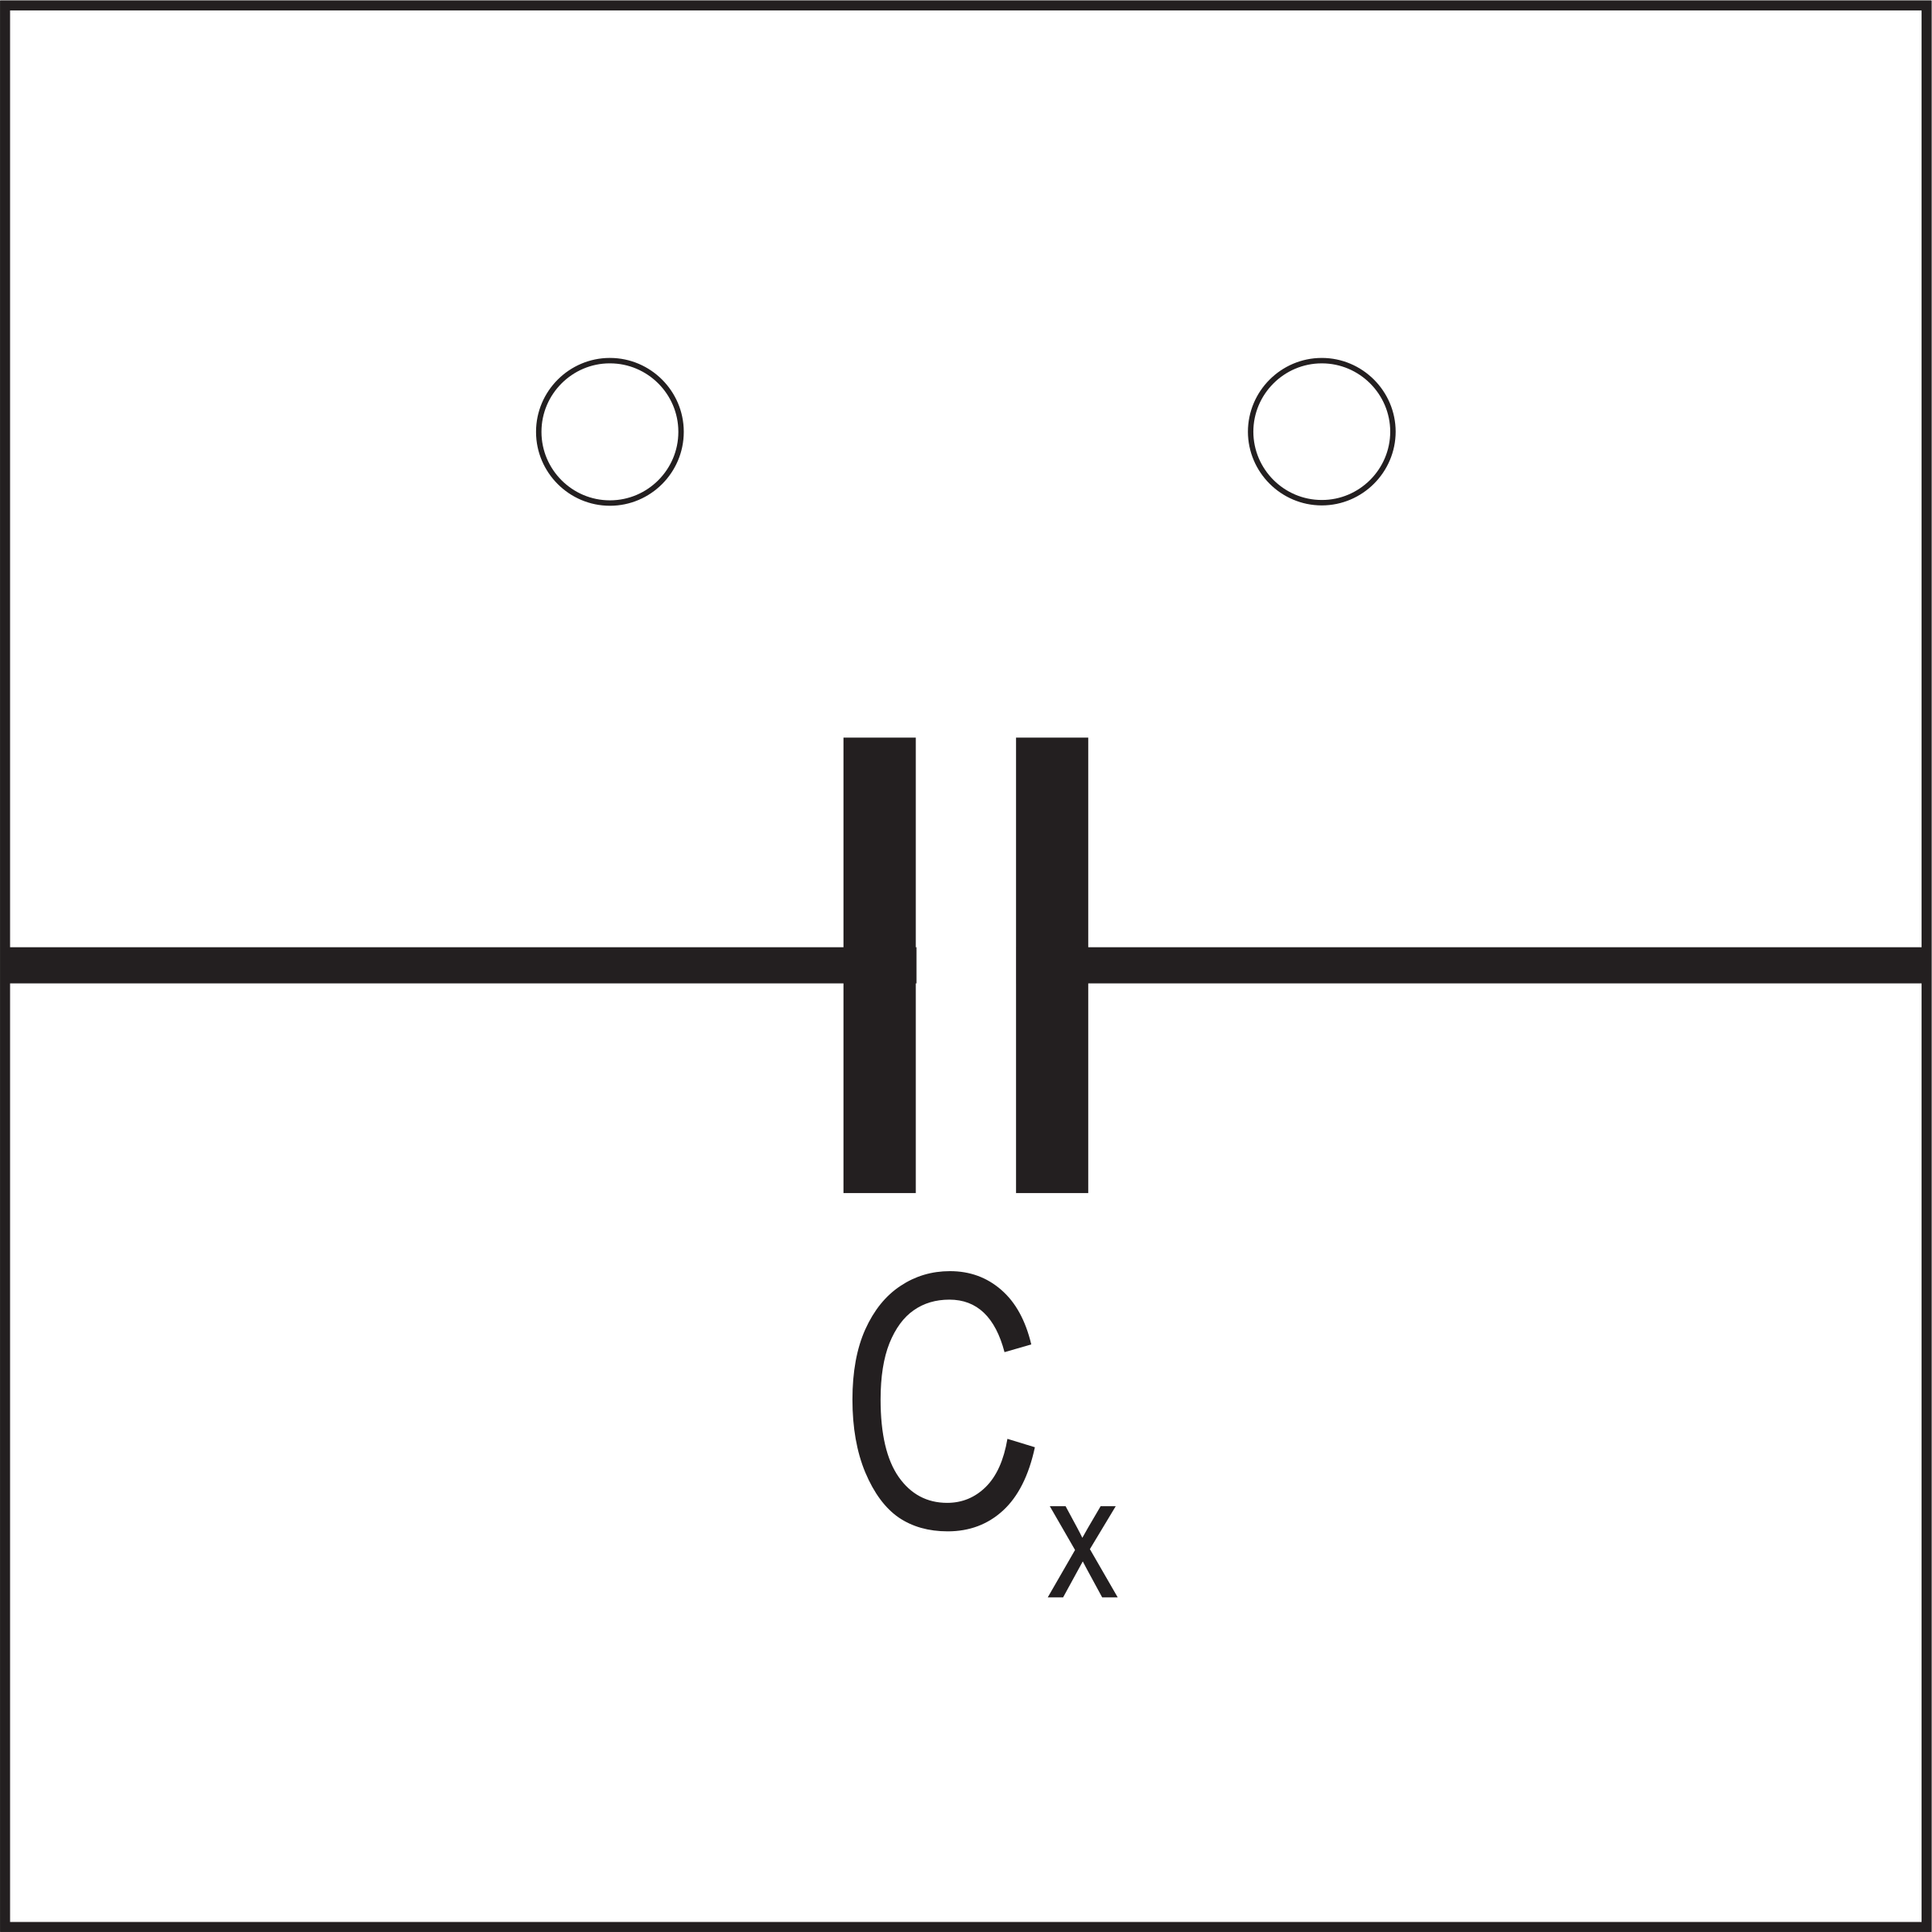 similiar simple series parallel electrical circuit clip art keywords schematic symbol for a capacitor get image about wiring diagram